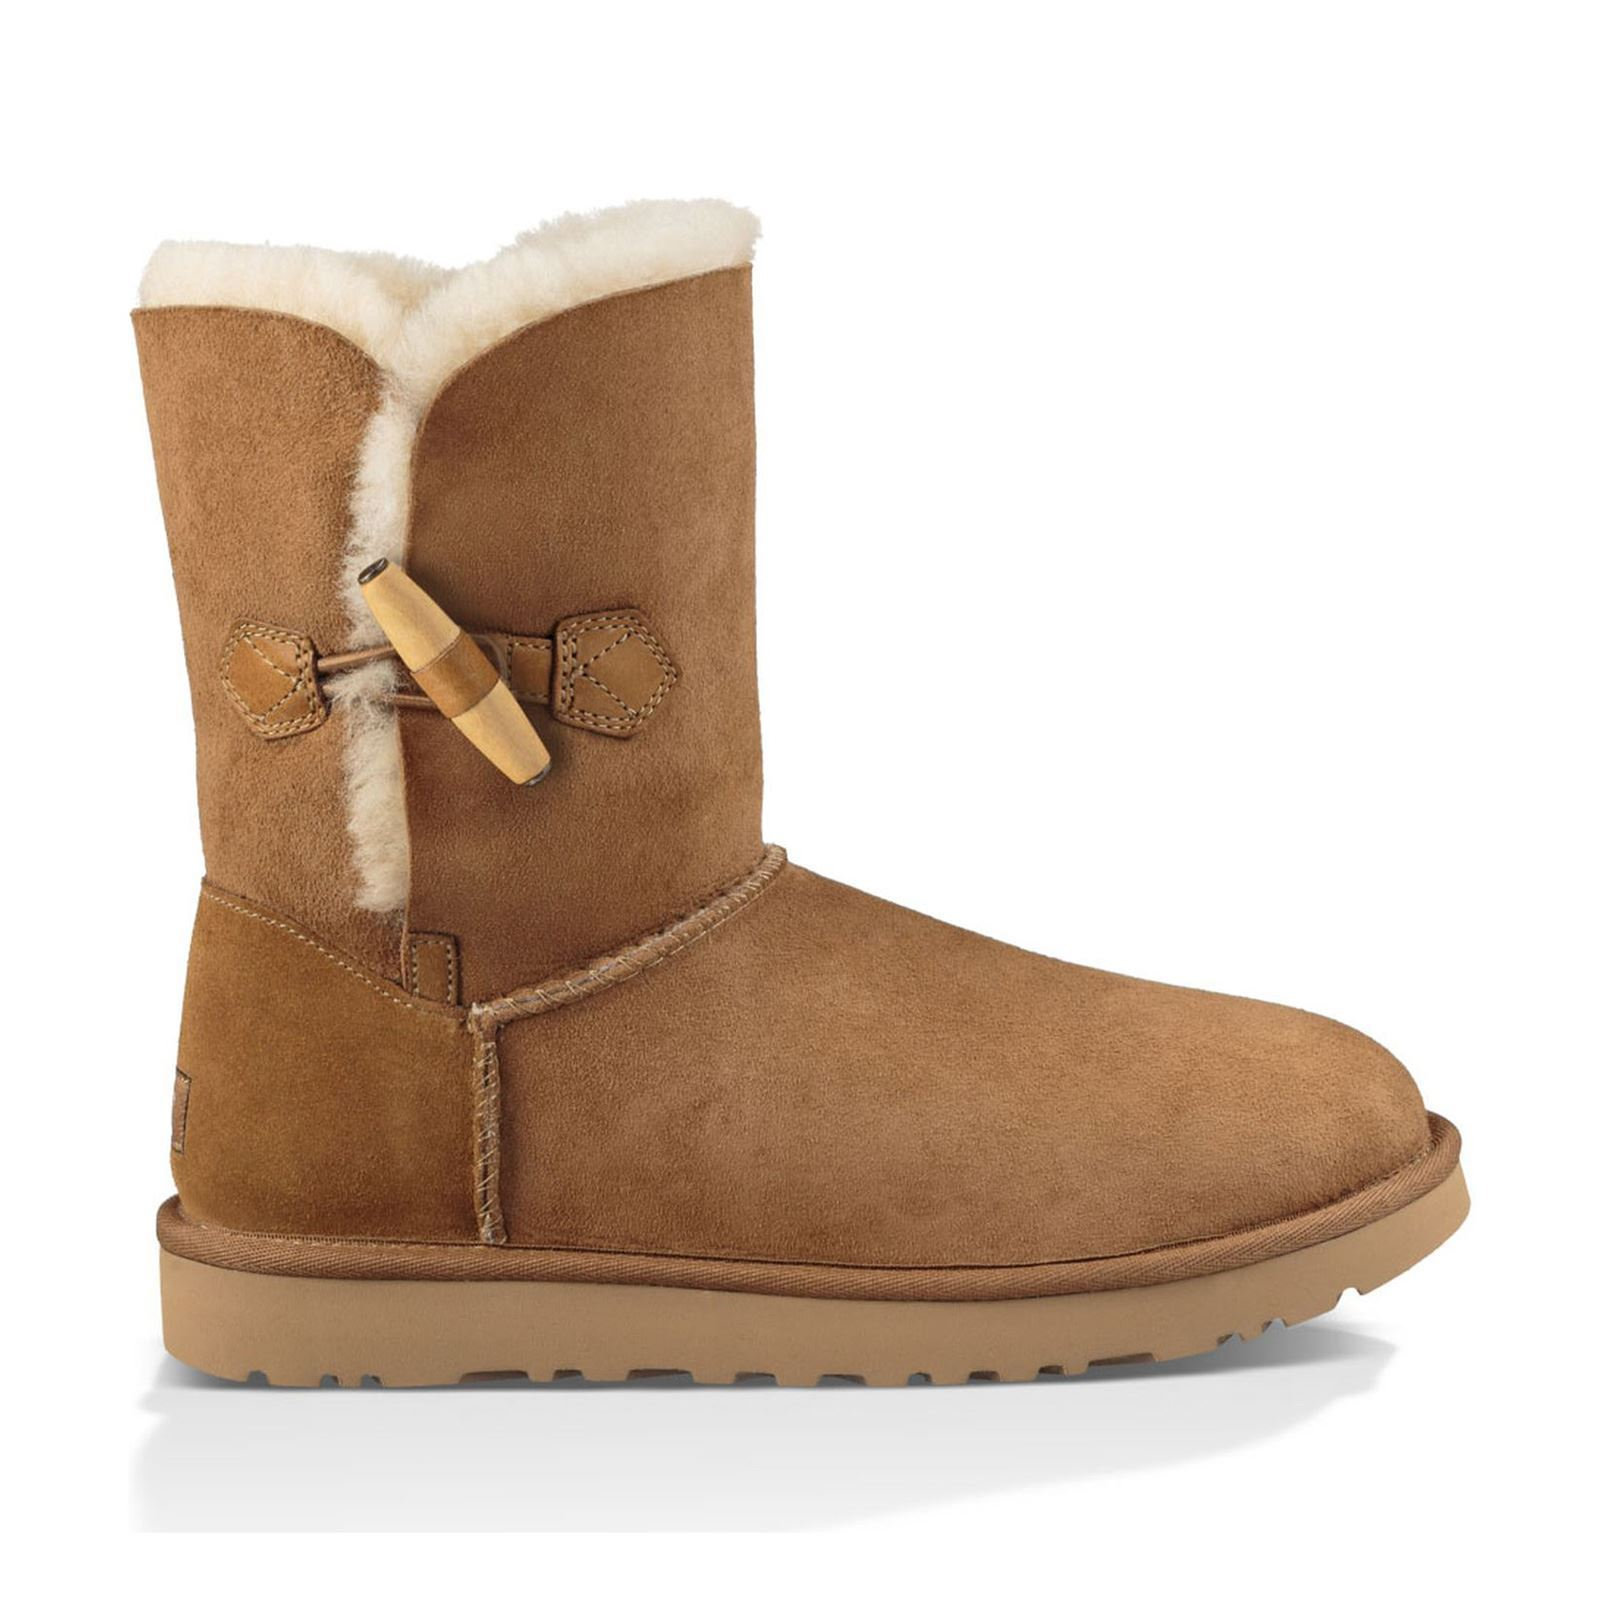 ugg keely boots fourr es en cuir su d camel brandalley. Black Bedroom Furniture Sets. Home Design Ideas